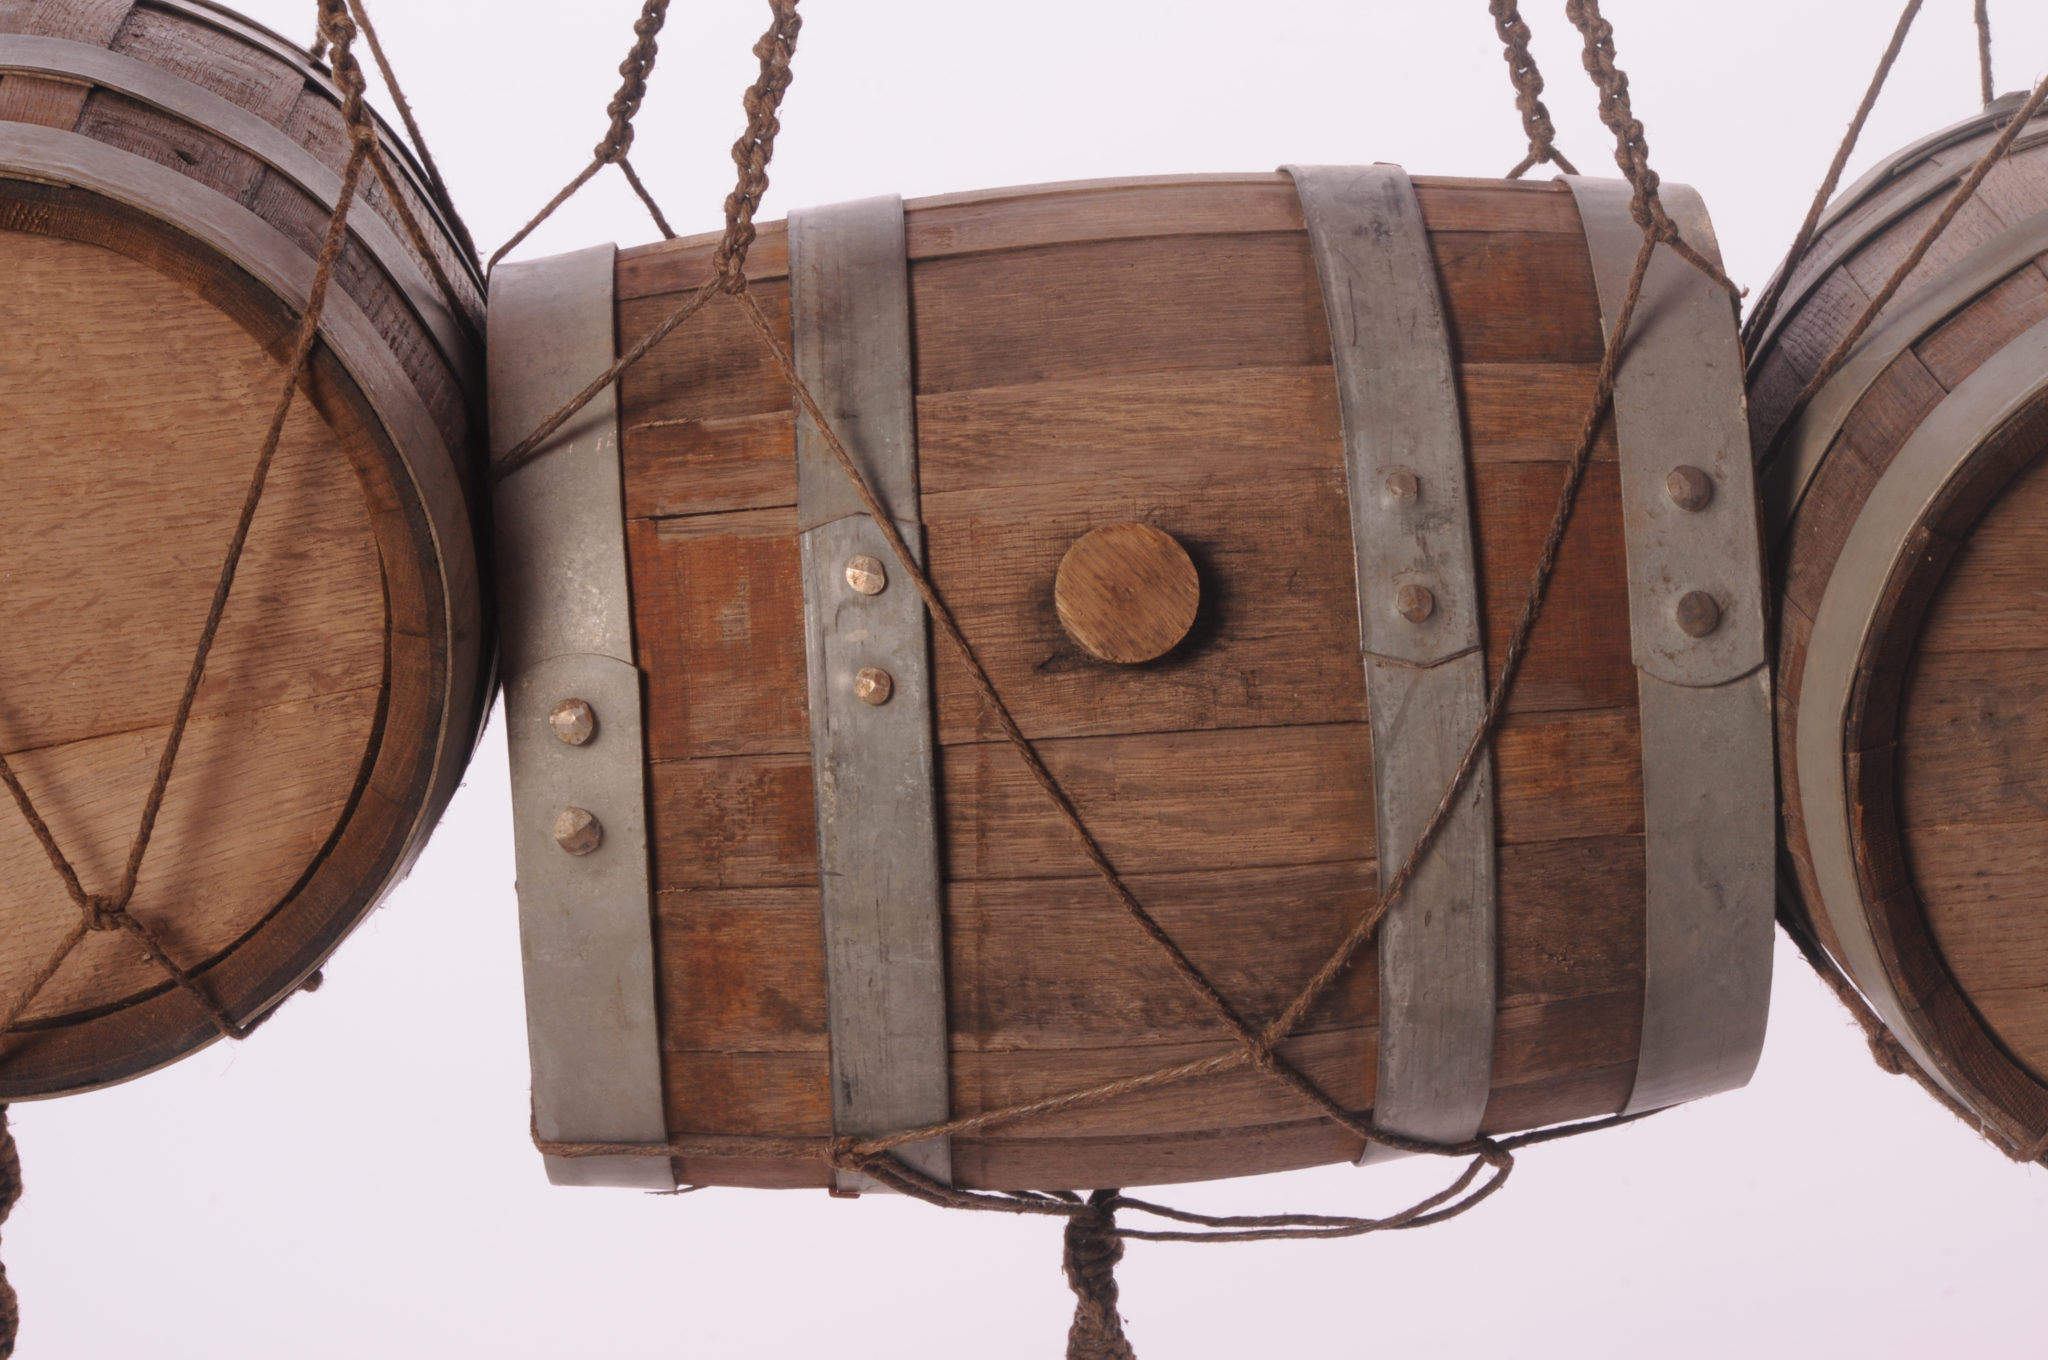 To the Four Corners of the Earth - 360 x 130 x 43 - 200 metres of hand knotted tarred marlin rope, four oak pin barrels - 2013 - CU4